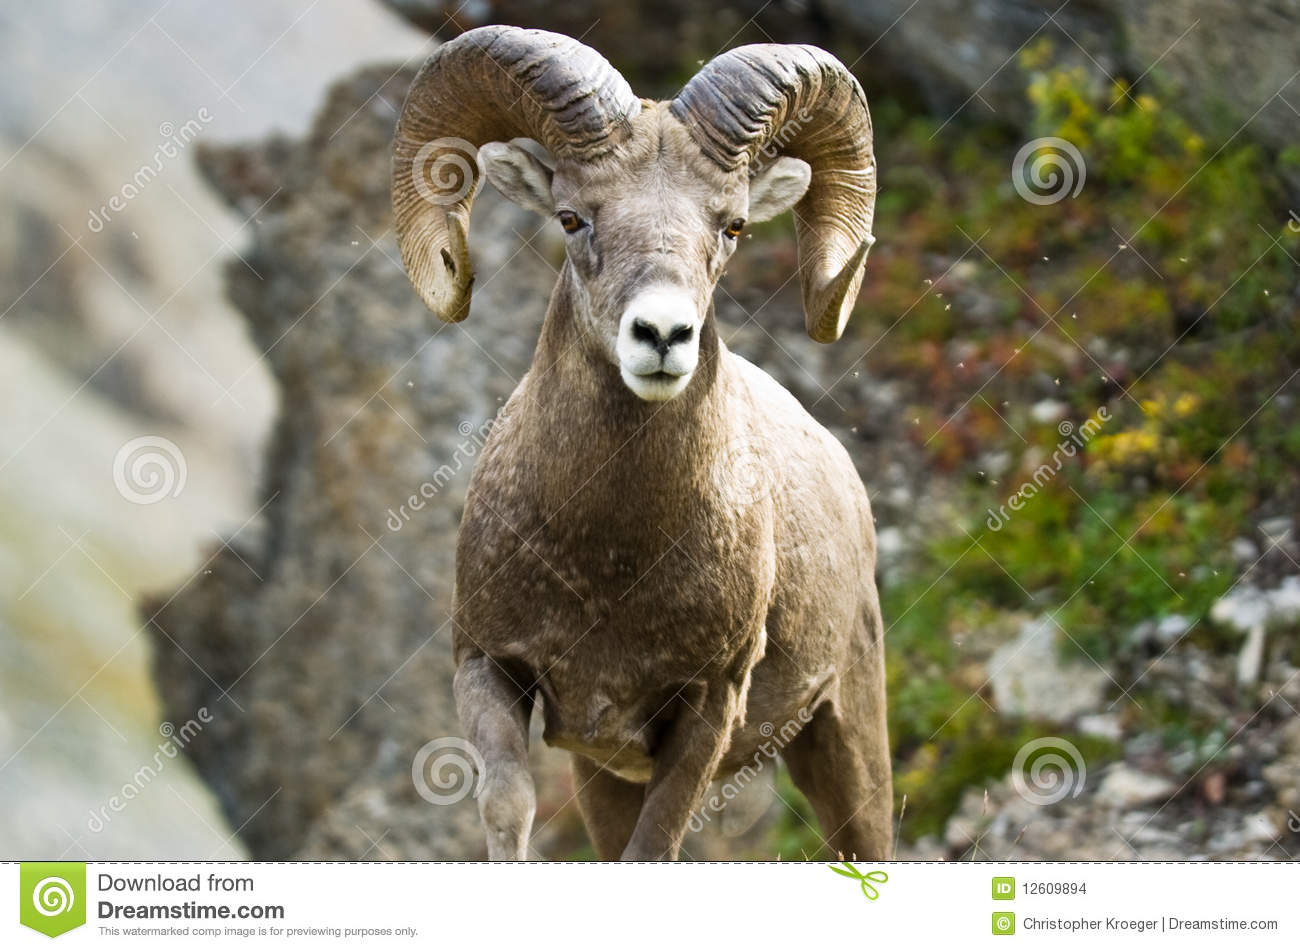 Ram big horn sheep